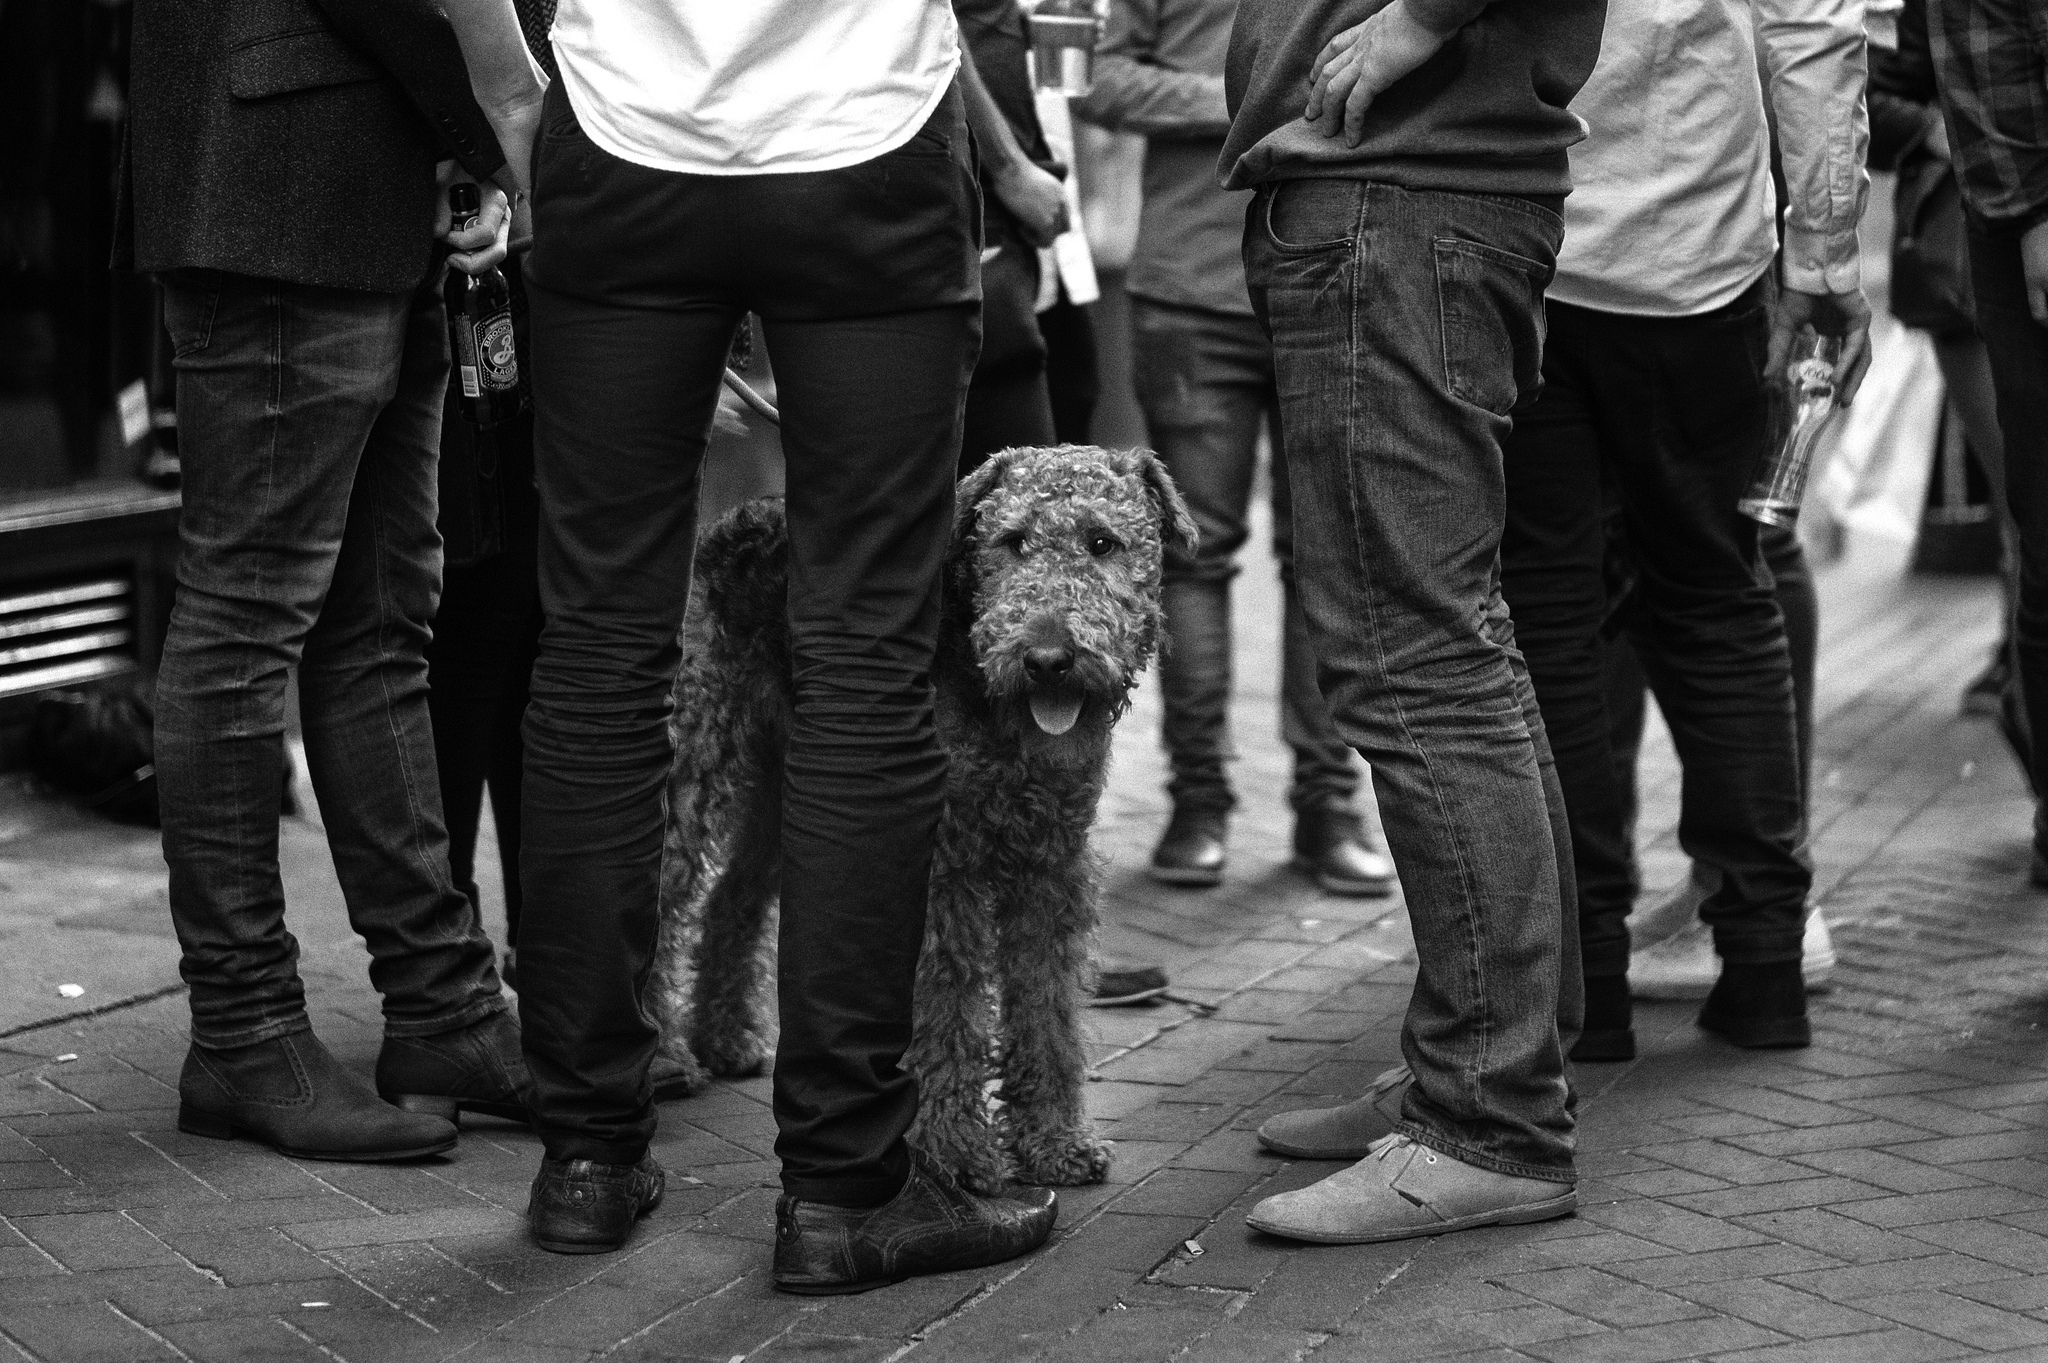 A dog surrounded by a group of men.